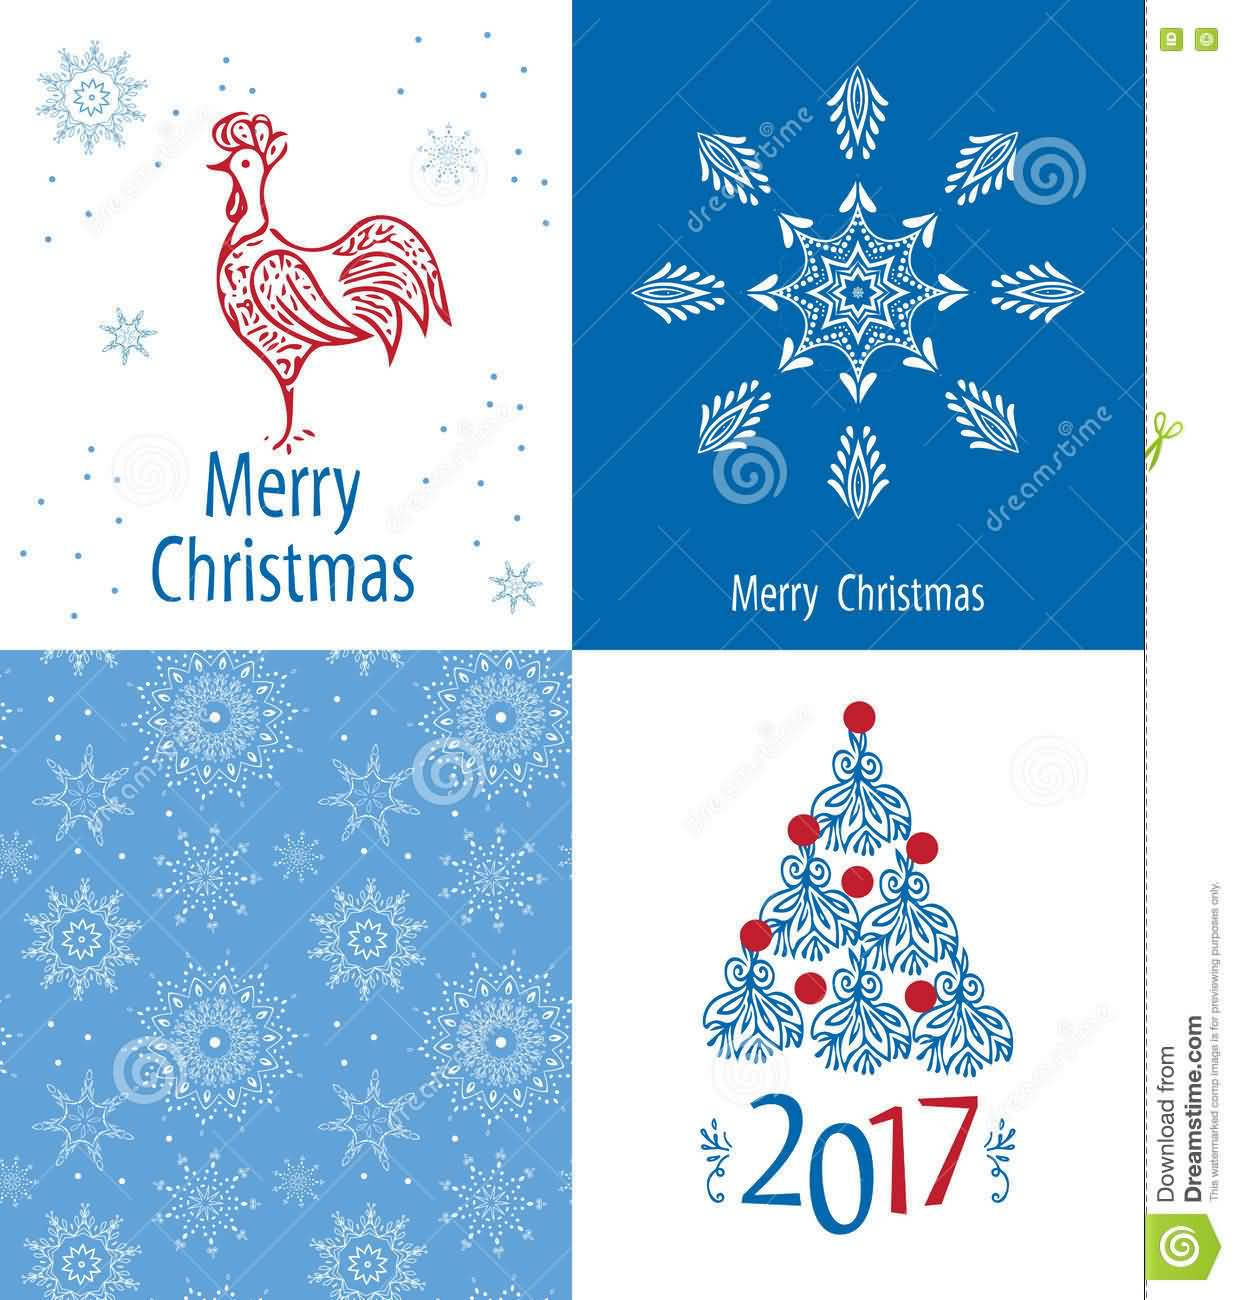 Christmas Cards 2017 Image Picture Photo Wallpaper 07